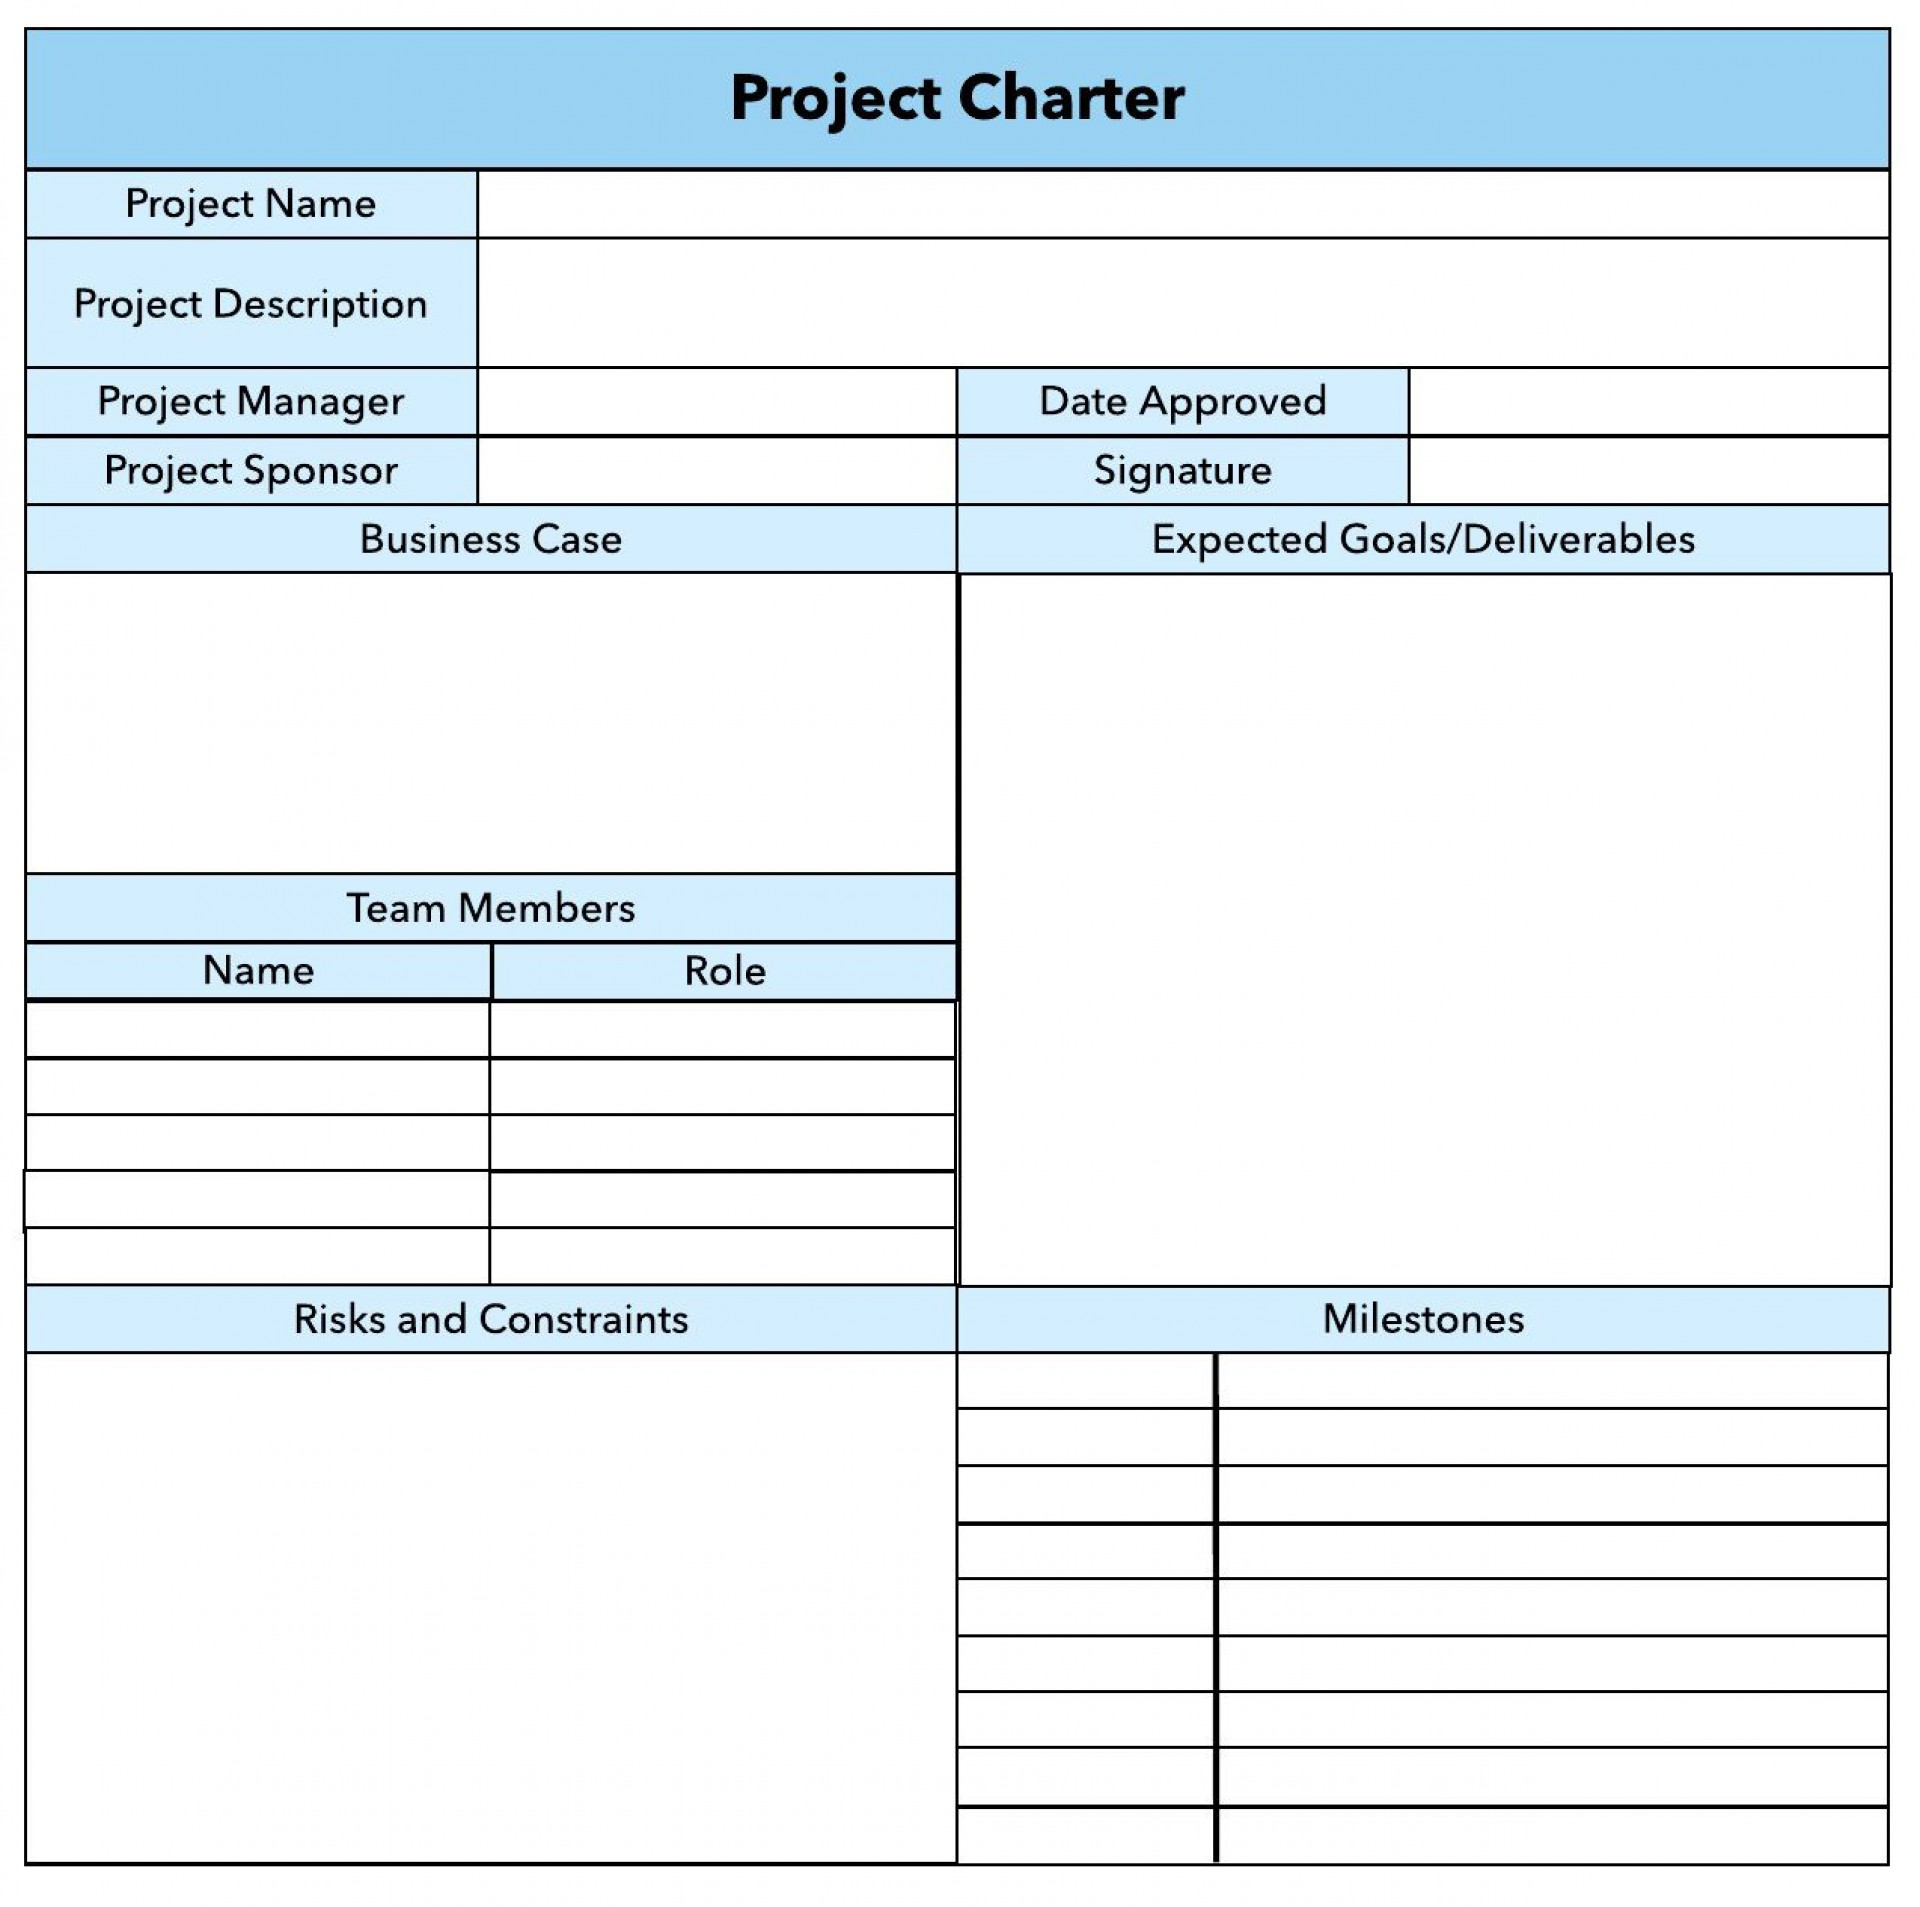 006 Top Pmbok Project Charter Template Image  Pmi Agile Word1920